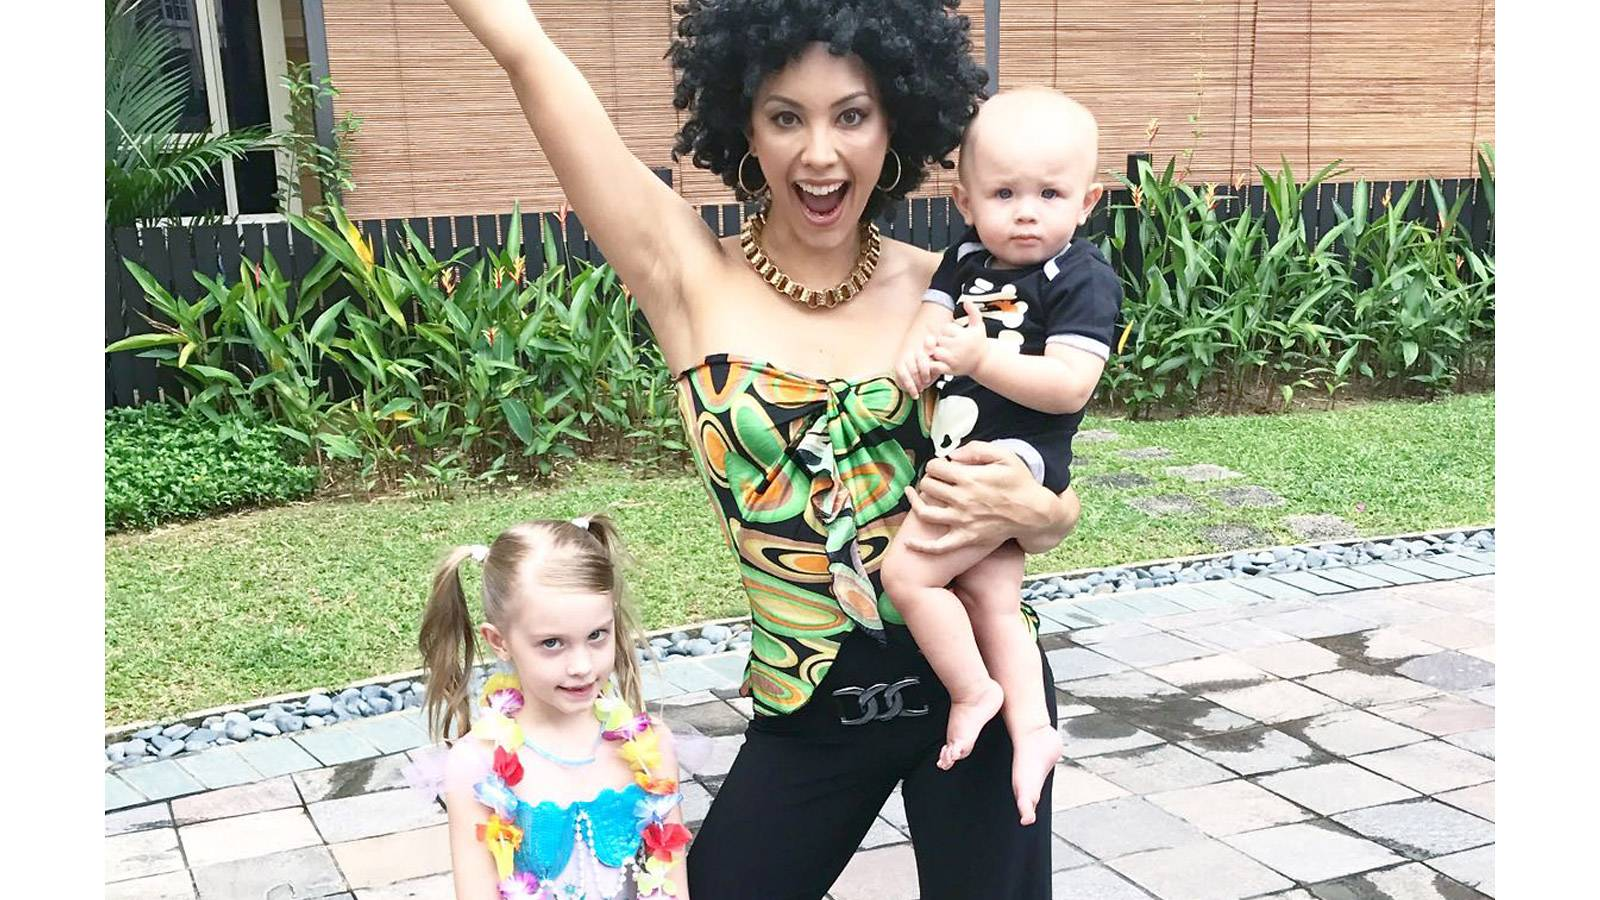 Parents-Celeb-mum-Jaymee-Ong-You-can't-prepare-for-motherhood3